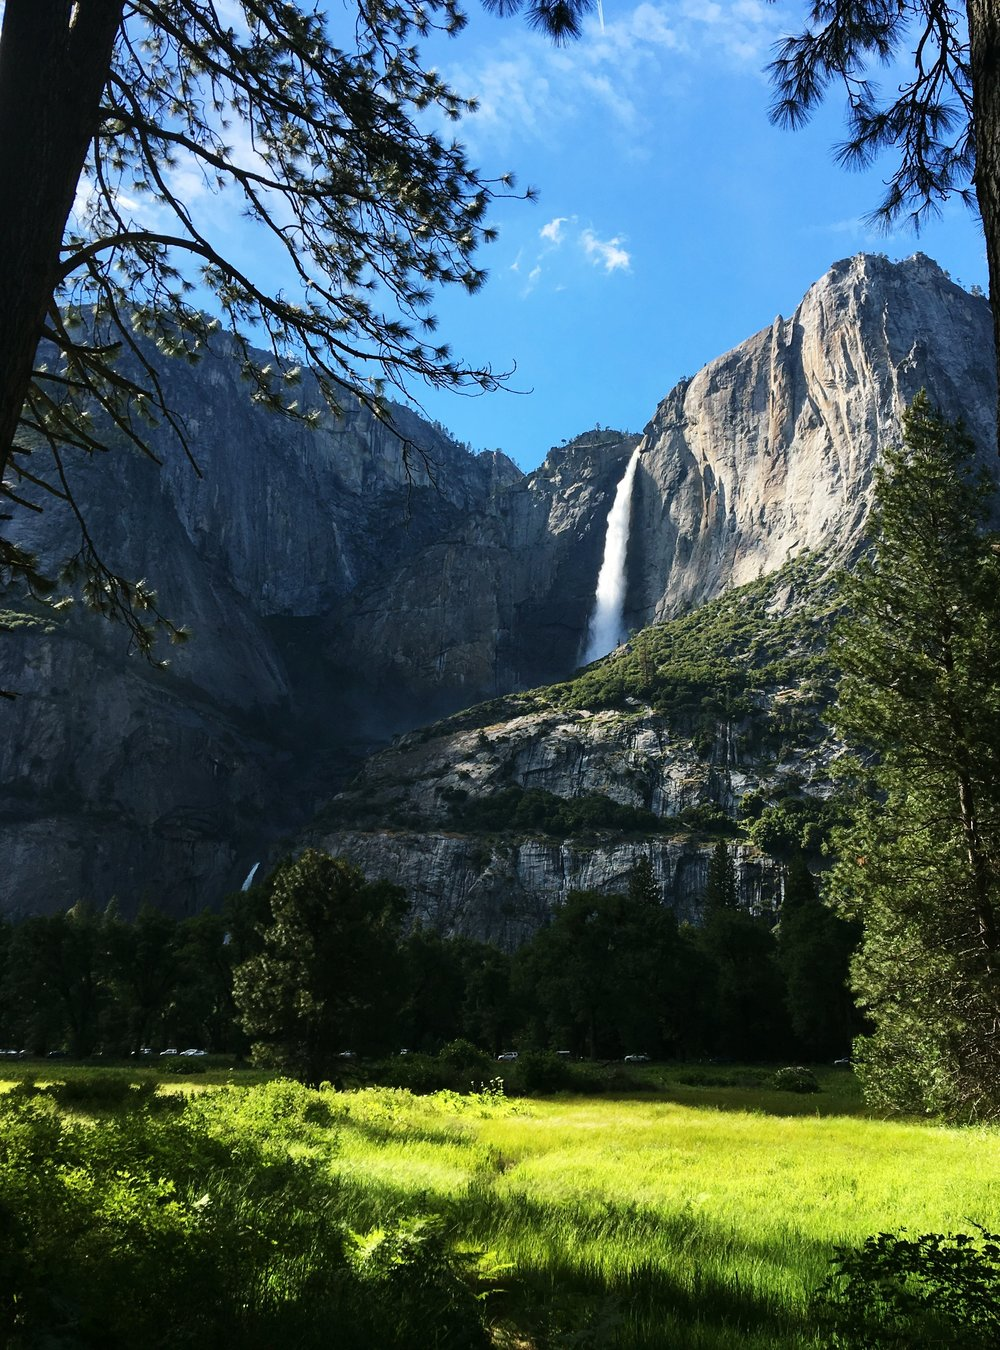 Yosemite view of Upper and Lower falls from meadow